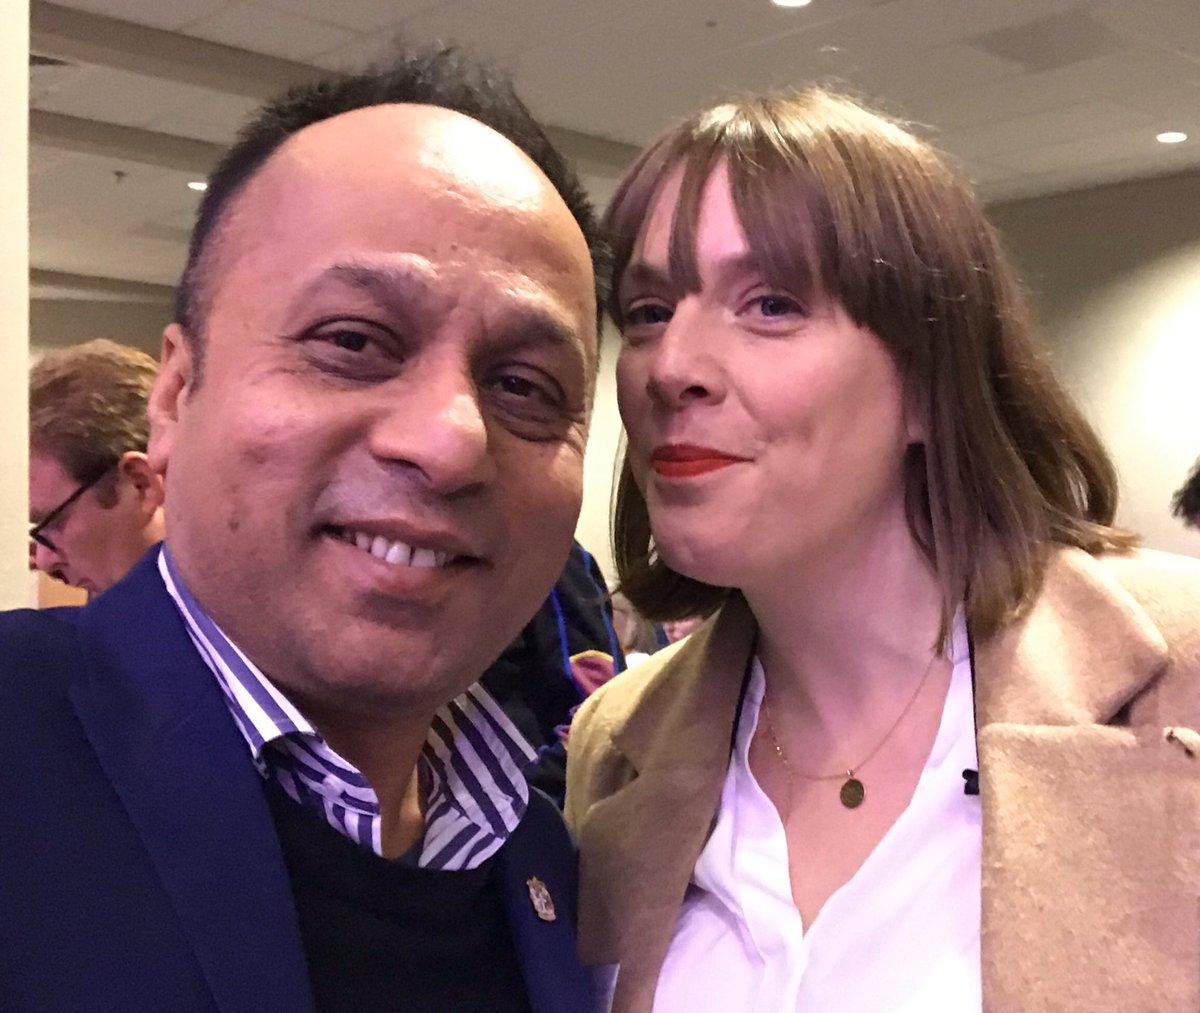 Wonderful to see @jessphillips @khalid4PB @ShabanaMahmood @LiamByrneMP @PreetKGillMP @steve_mccabe @JackDromeyMP returned as our MPs again! and a huge congratulations to our newly elected @TahirAliMP best wishes going forward. It's time now to listen, reflect & rebuild